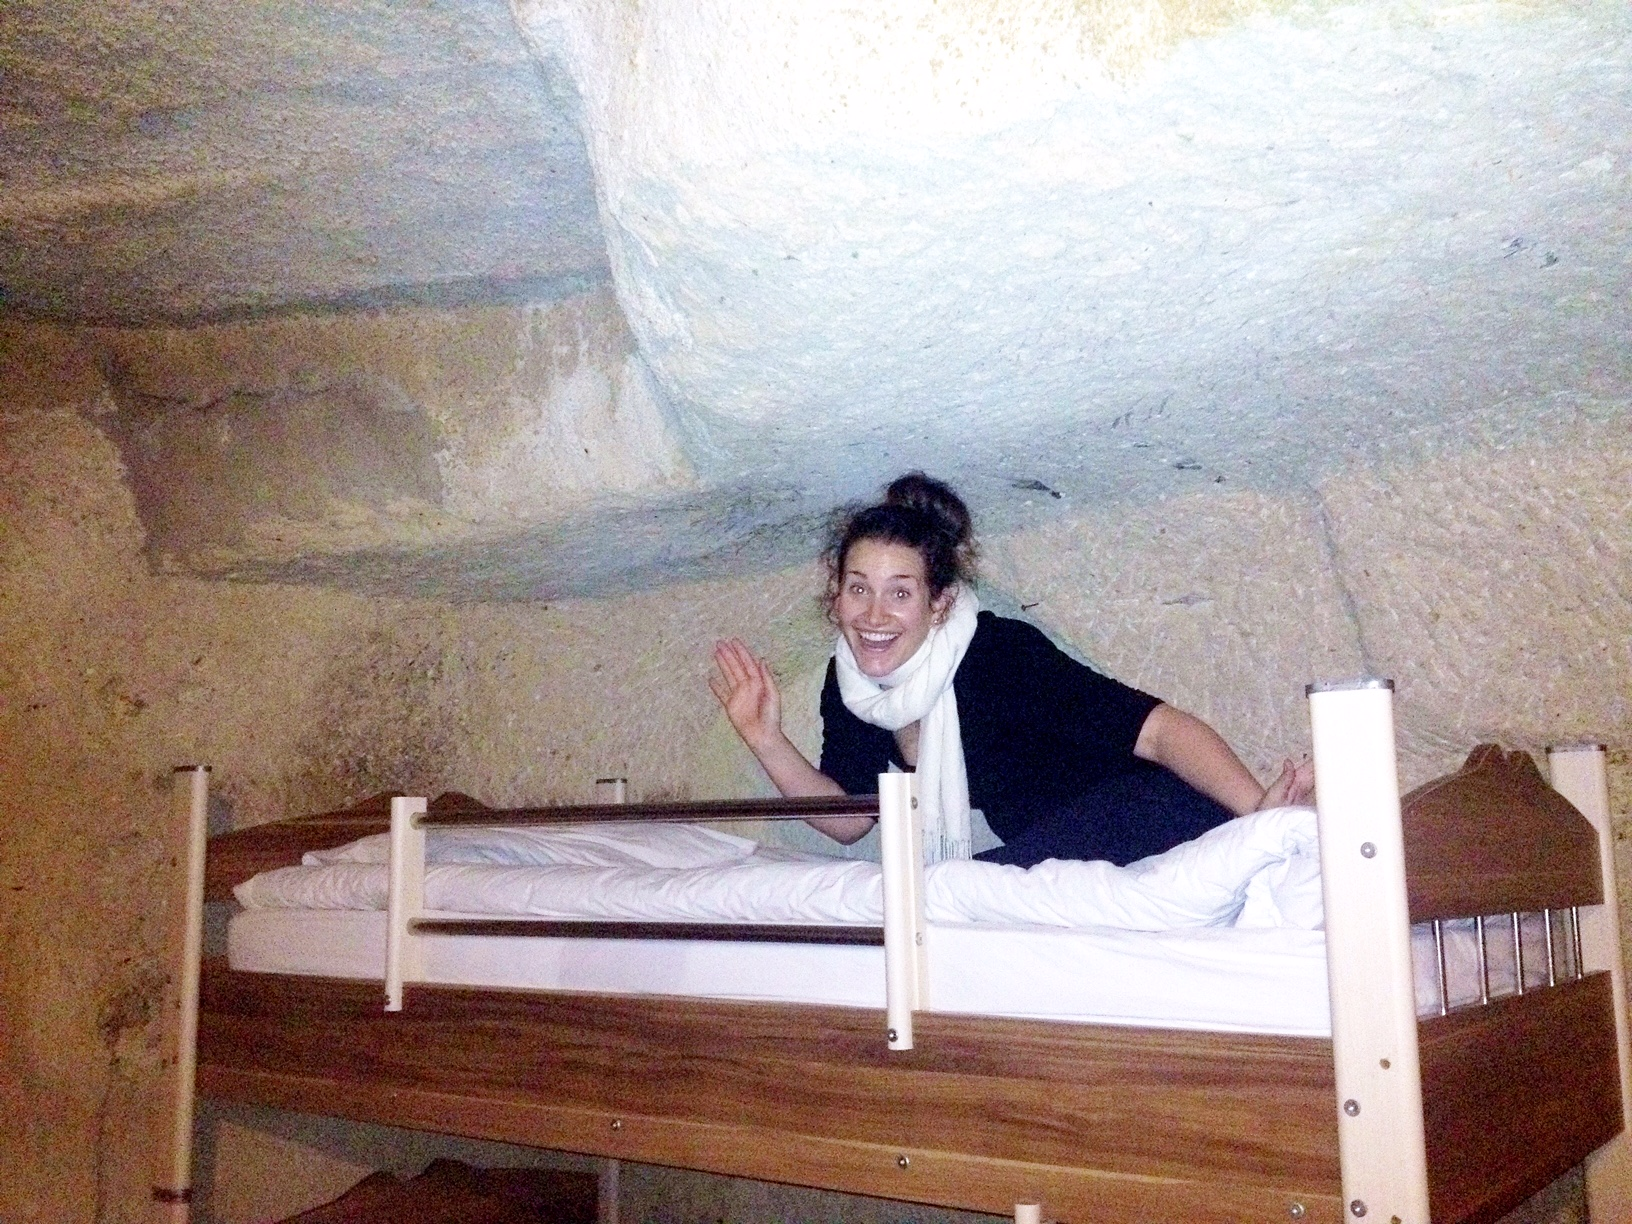 I stayed in a cave and it was dope!